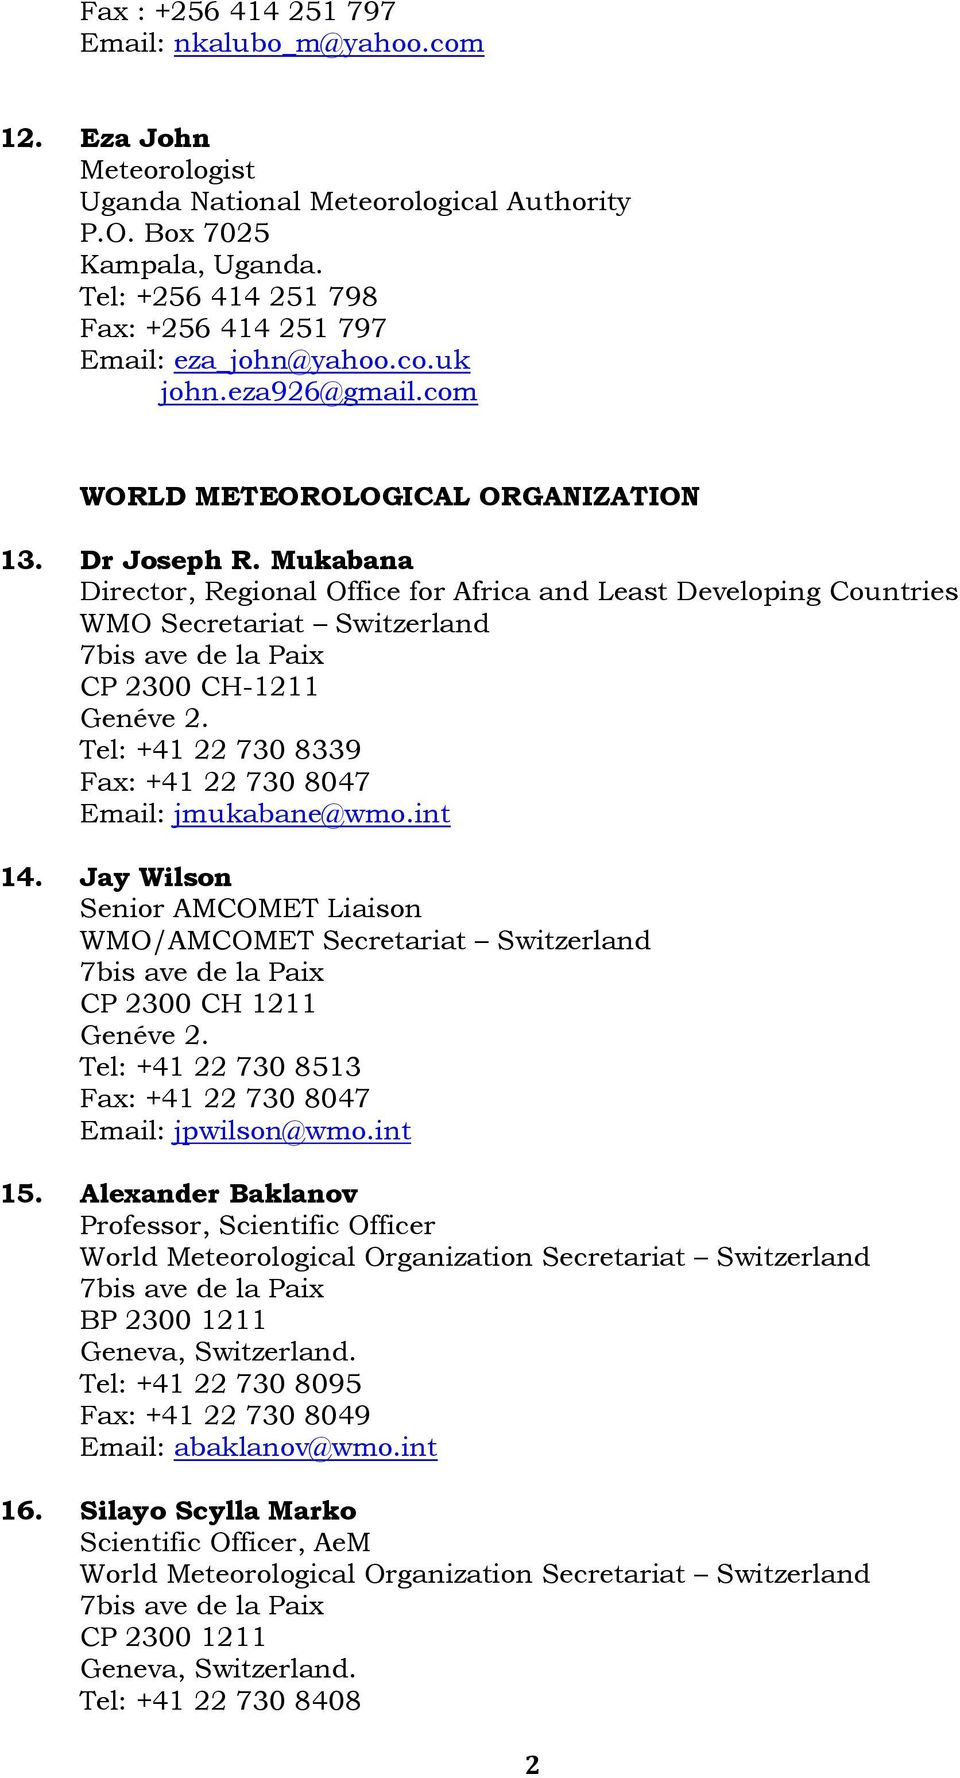 Mukabana Director, Regional Office for Africa and Least Developing Countries WMO Secretariat Switzerland CP 2300 CH-1211 Genéve 2. Tel: +41 22 730 8339 Fax: +41 22 730 8047 Email: jmukabane@wmo.